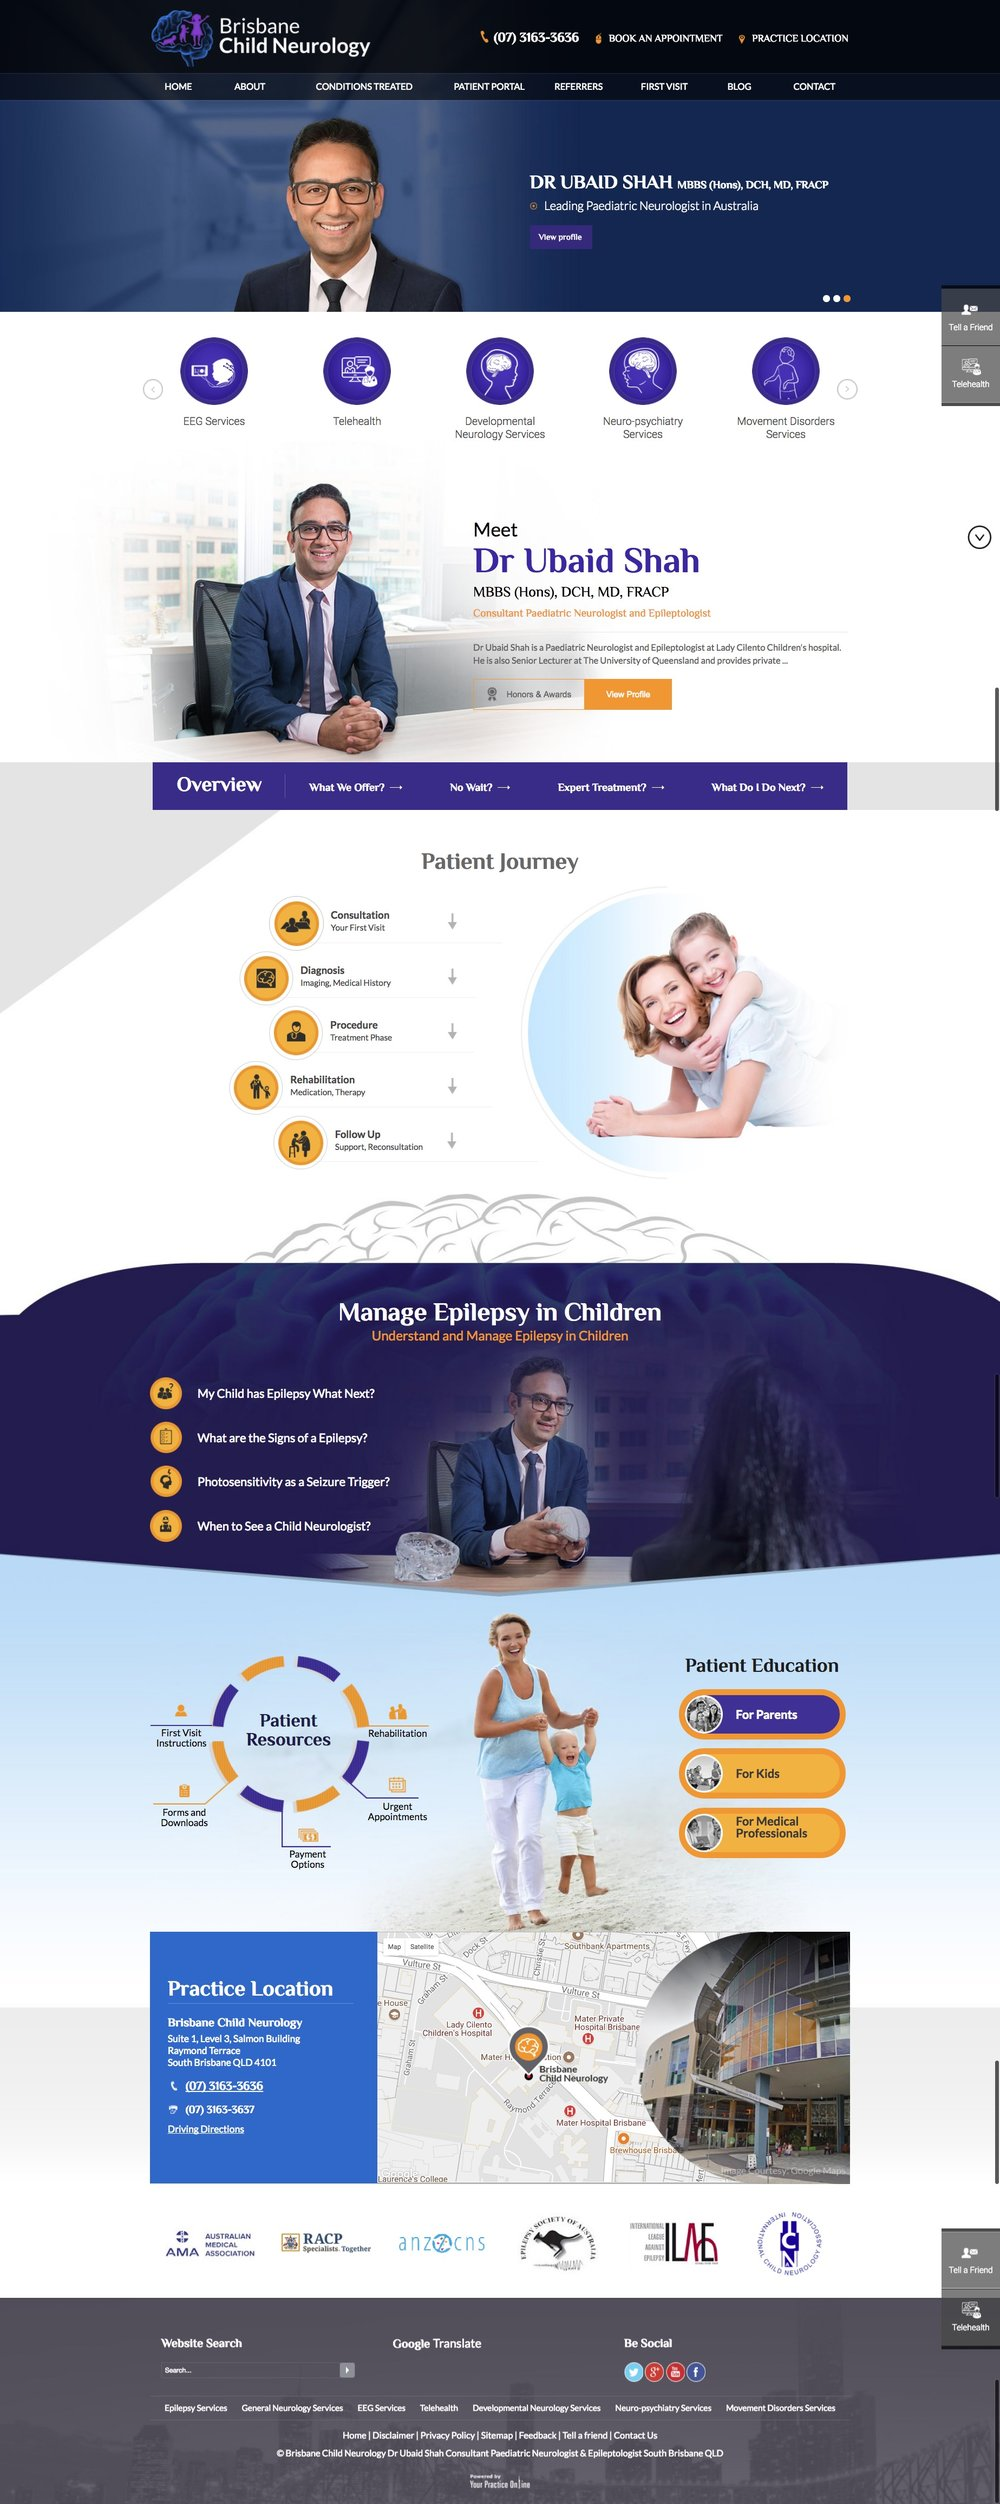 Medical-Website-Design-Neurologist-Brisbane.jpg